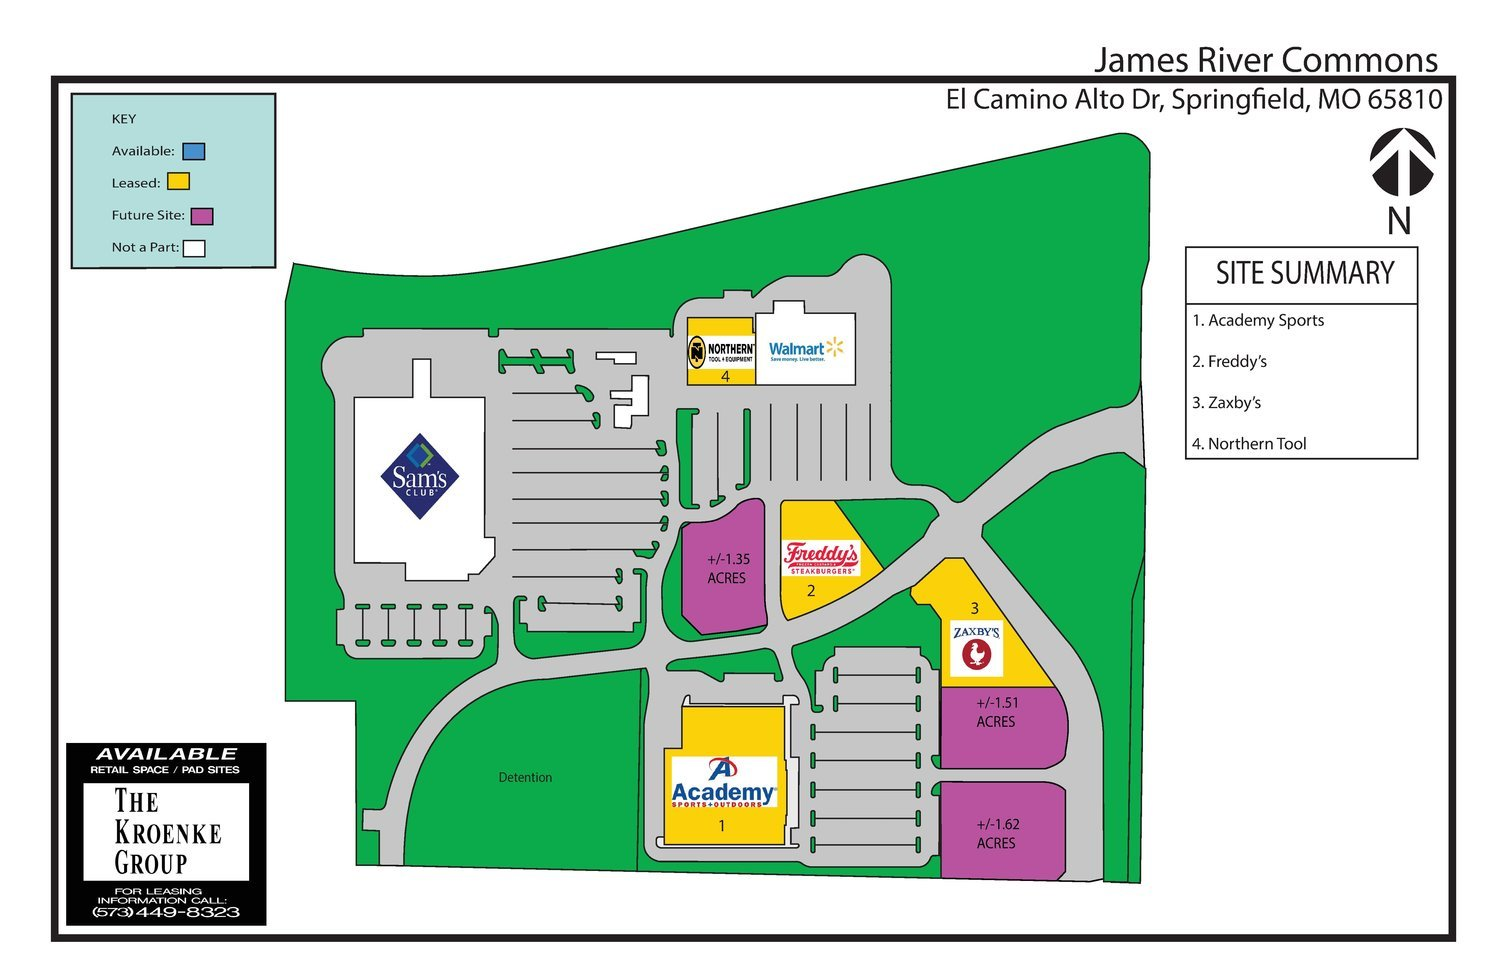 James River Commons has three spaces that haven't been claimed.